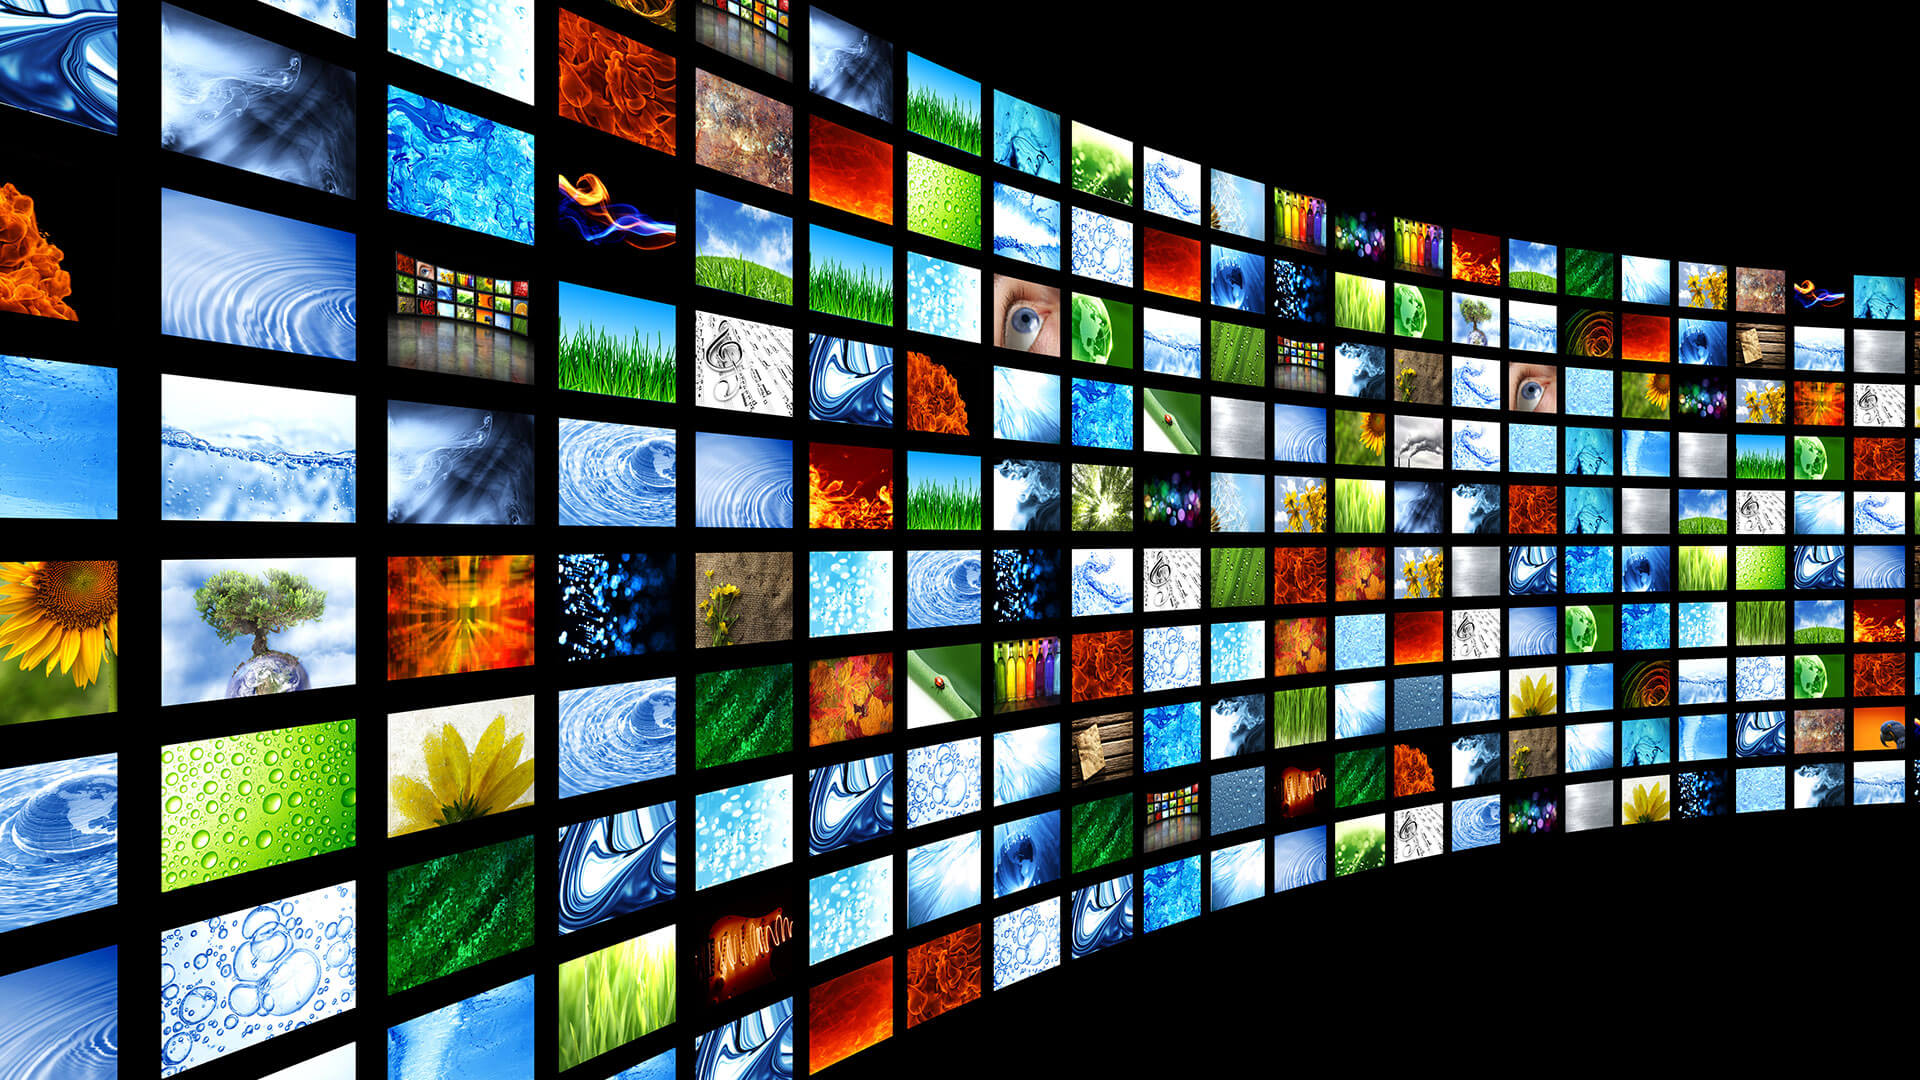 TV-focused brand budgets are more efficient when combined with YouTube and Facebook